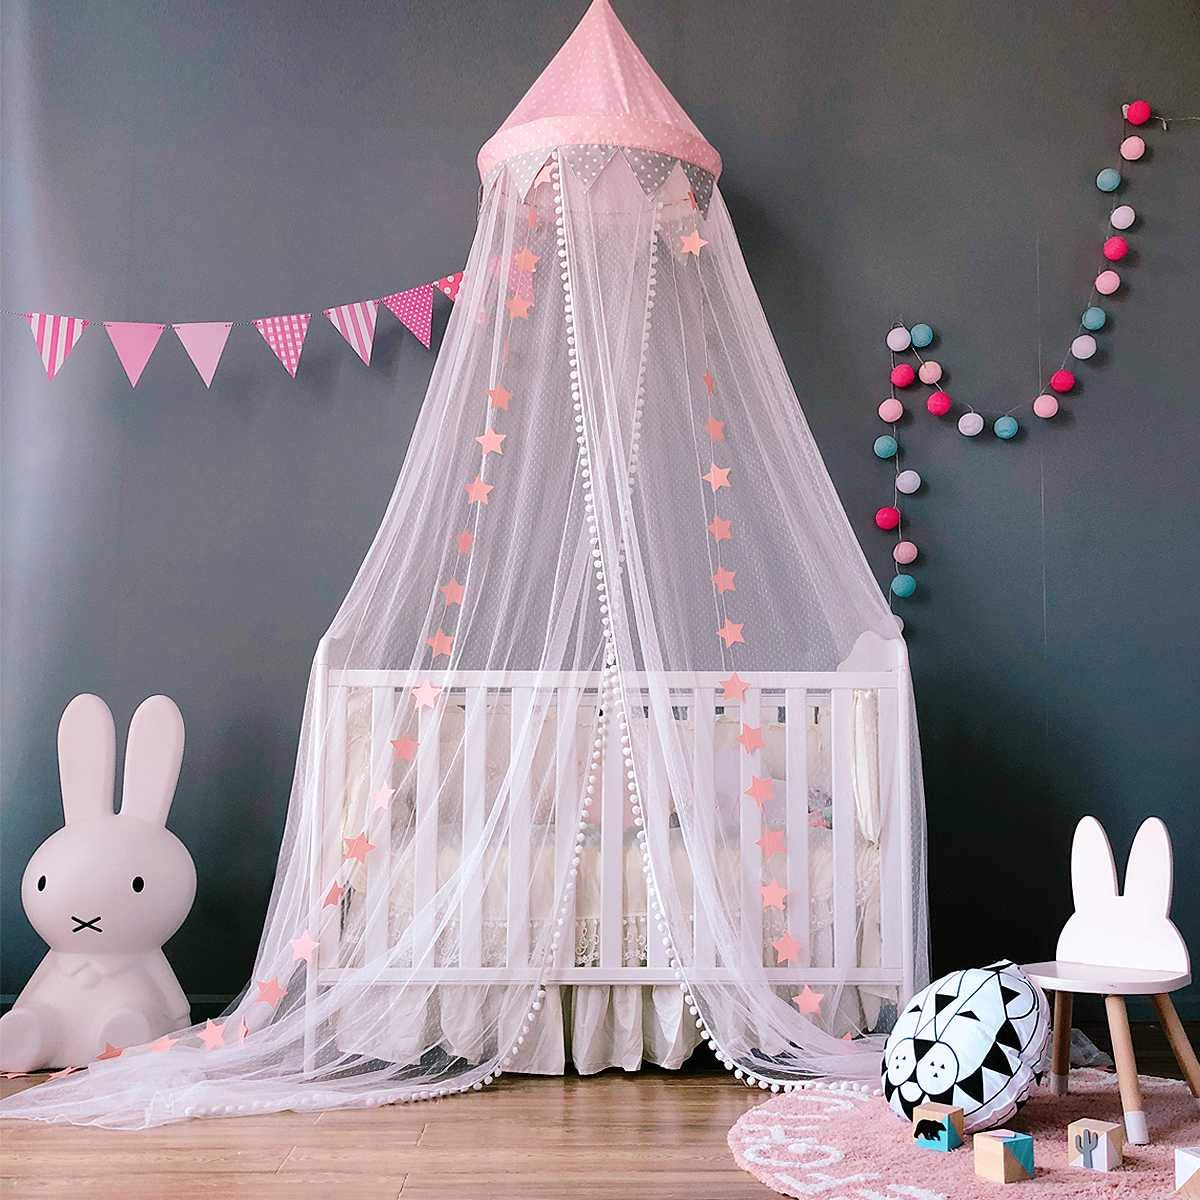 Dix-Rainbow Bed Canopy Mosquito Net Baby Crib Kids Twin Full Queen Size Bed, Reading Nook for Girls and Boys, Princess Lace Round Dome Fairy Netting Curtains, Kids Play Tent Castle Games House - Pink